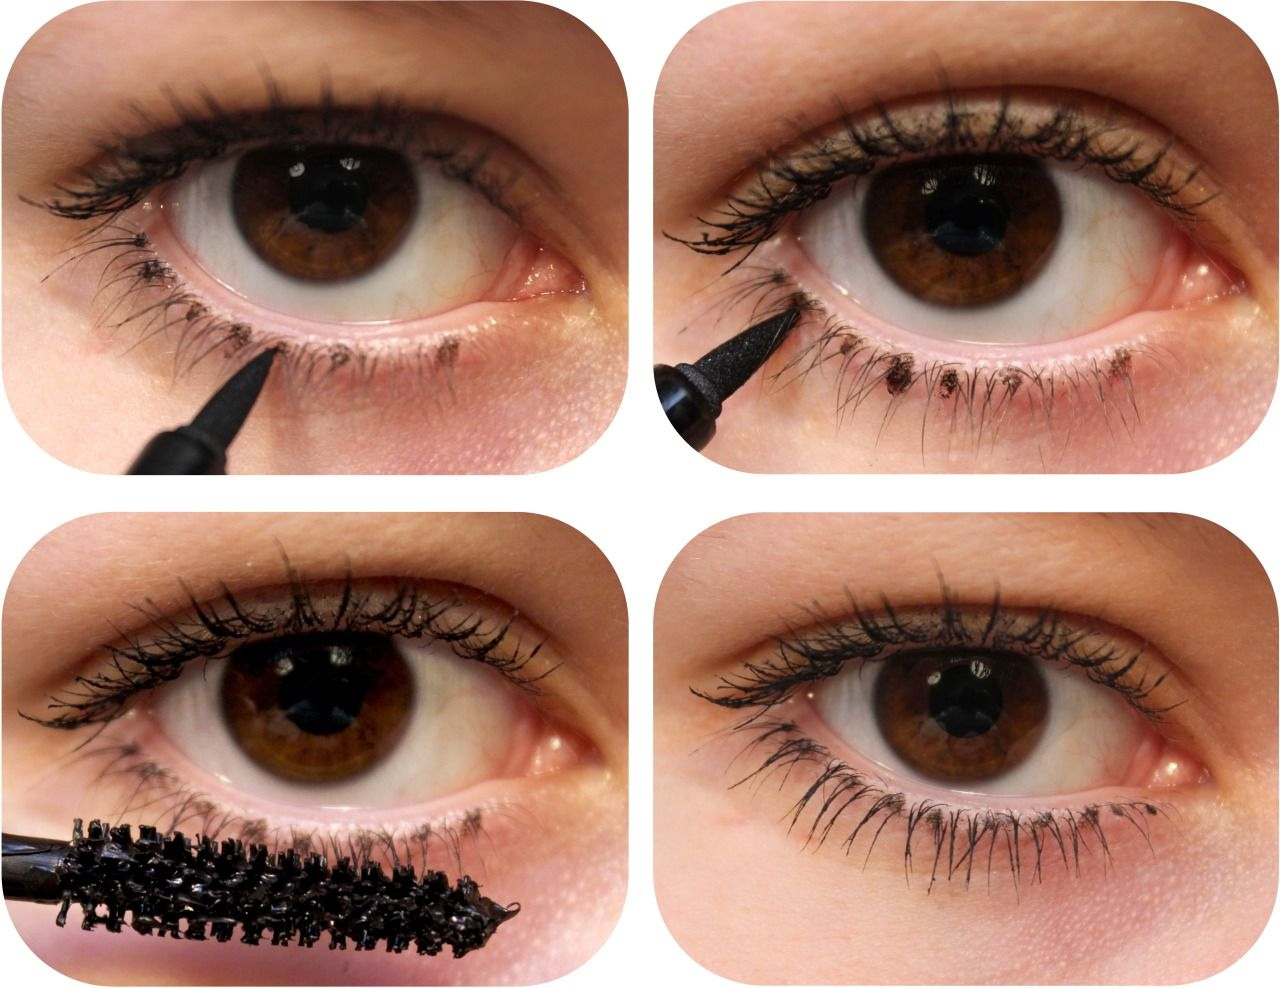 Dot Inbetween Your Lashes With A Liquid Liner To Make Them Look